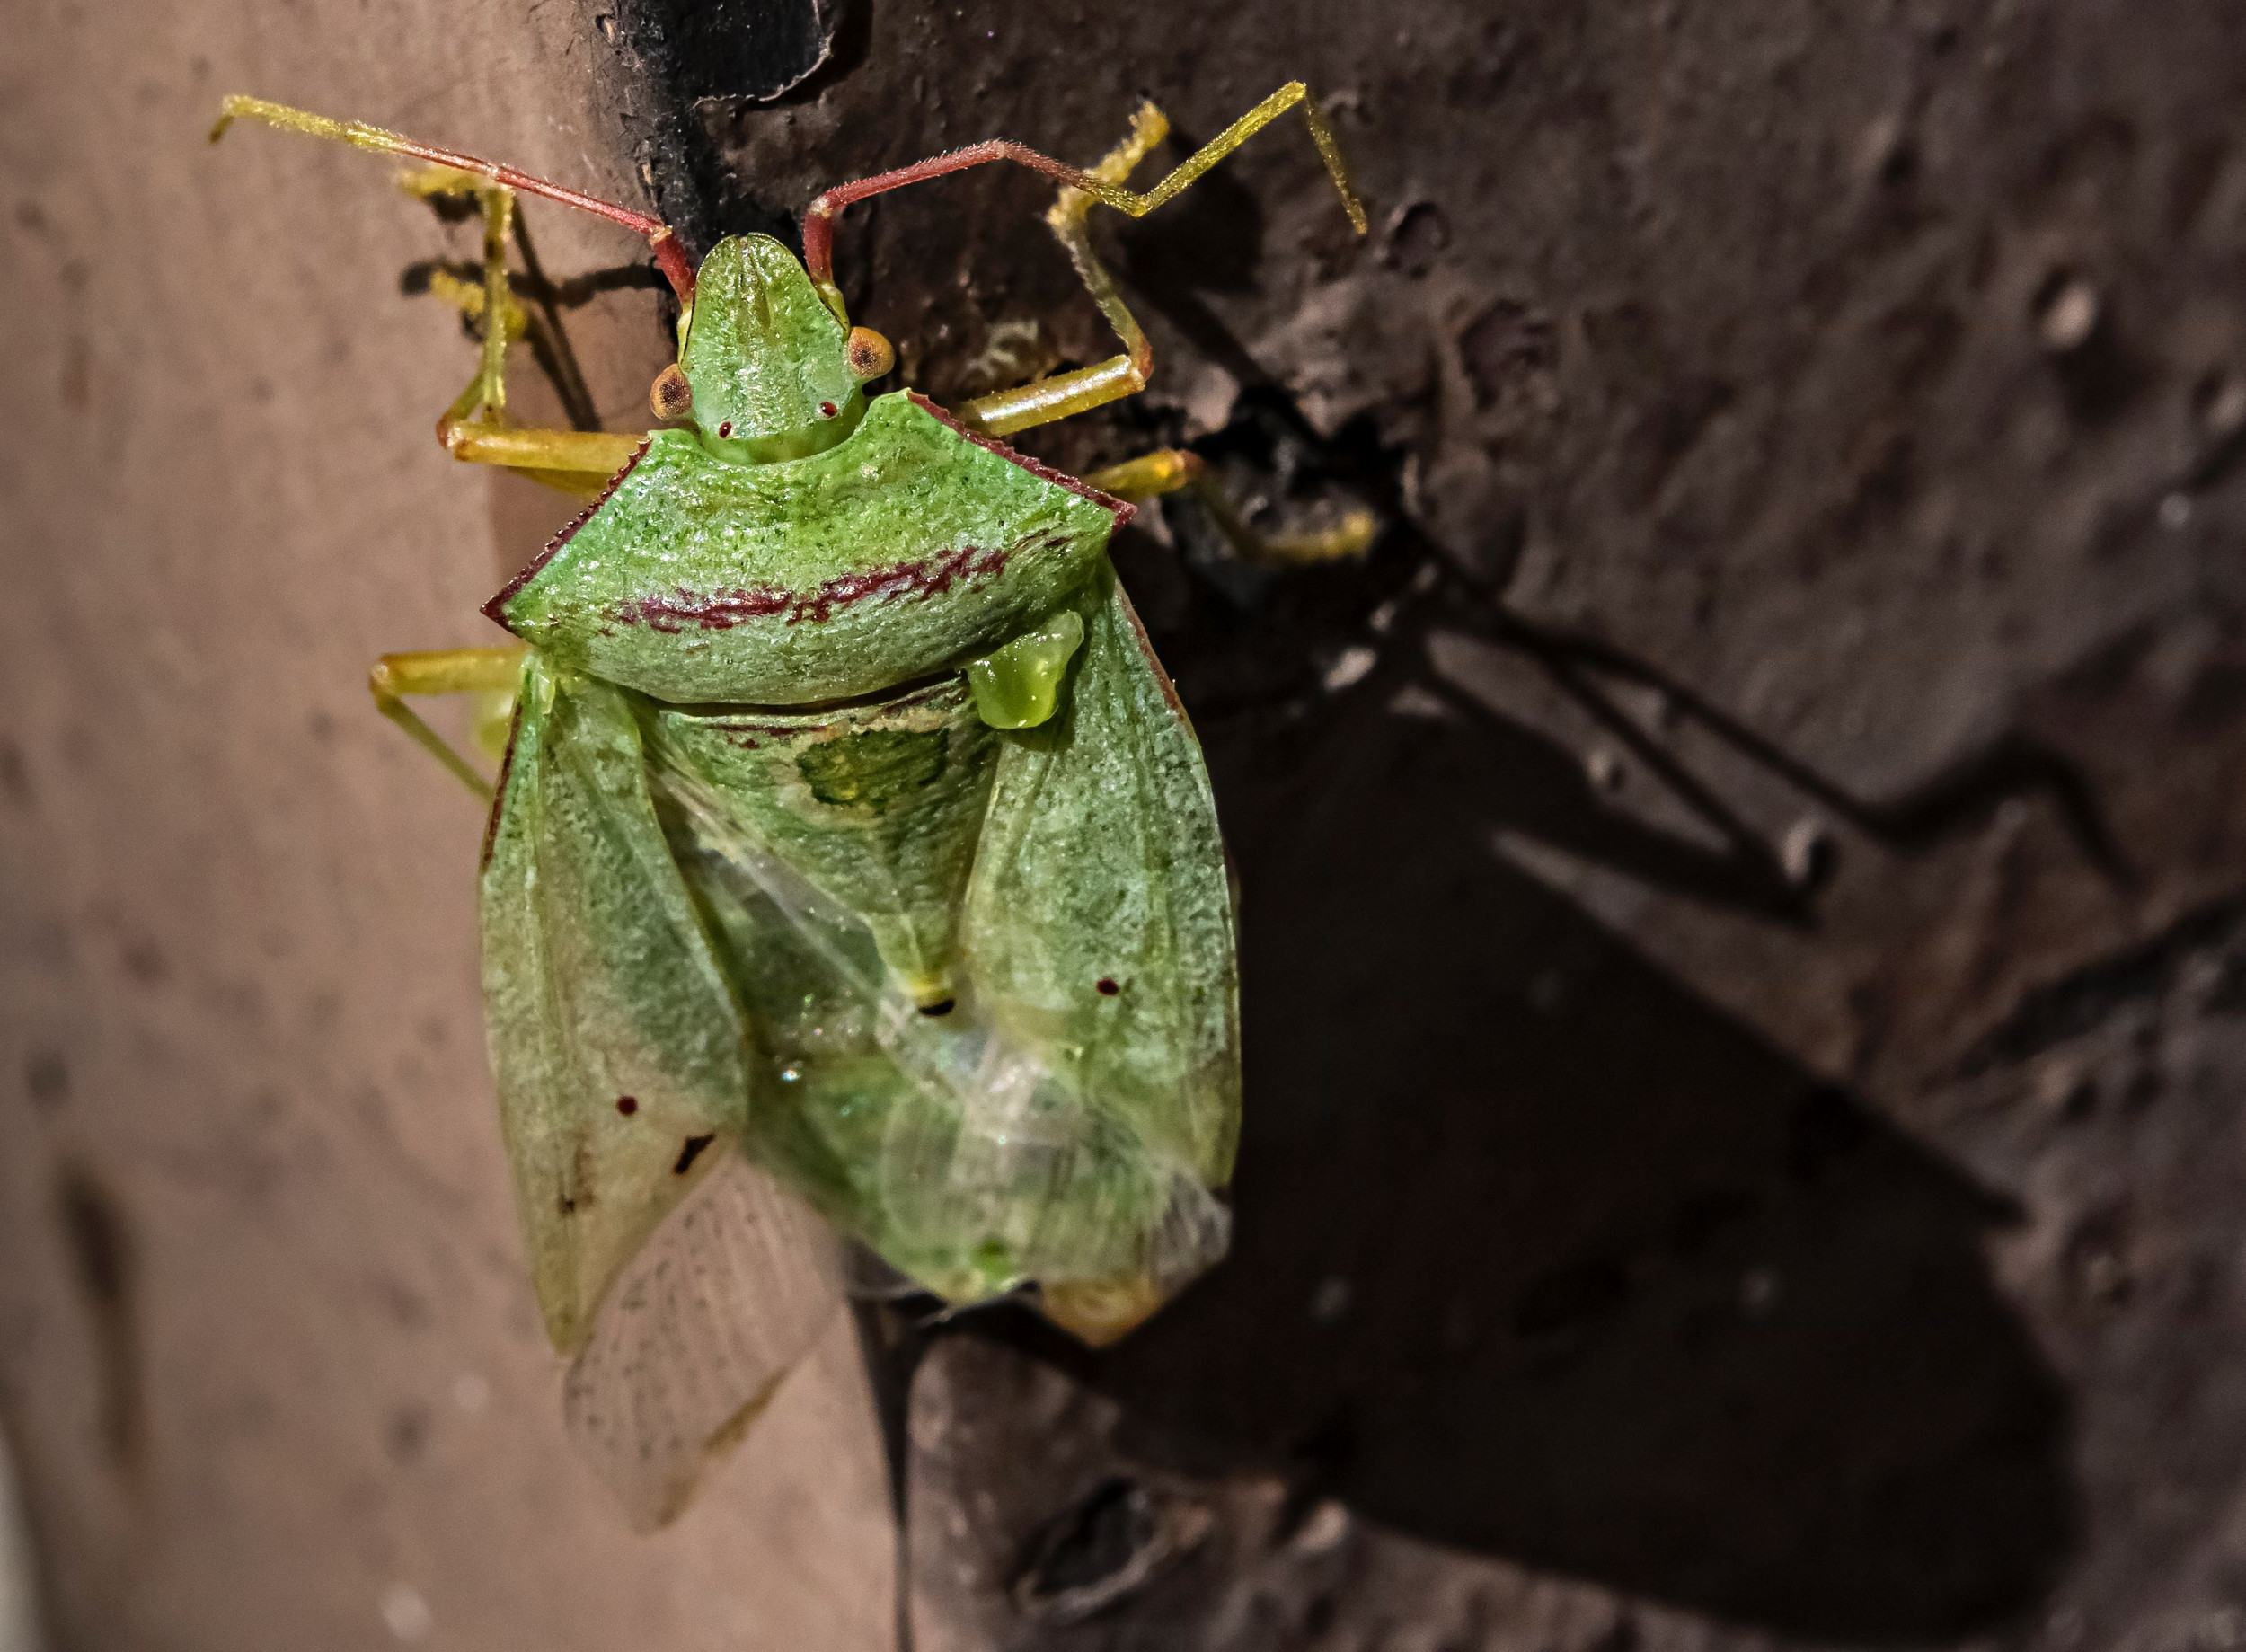 Swarms of Stink Bugs Invade Southern Utah: 'Never Seen